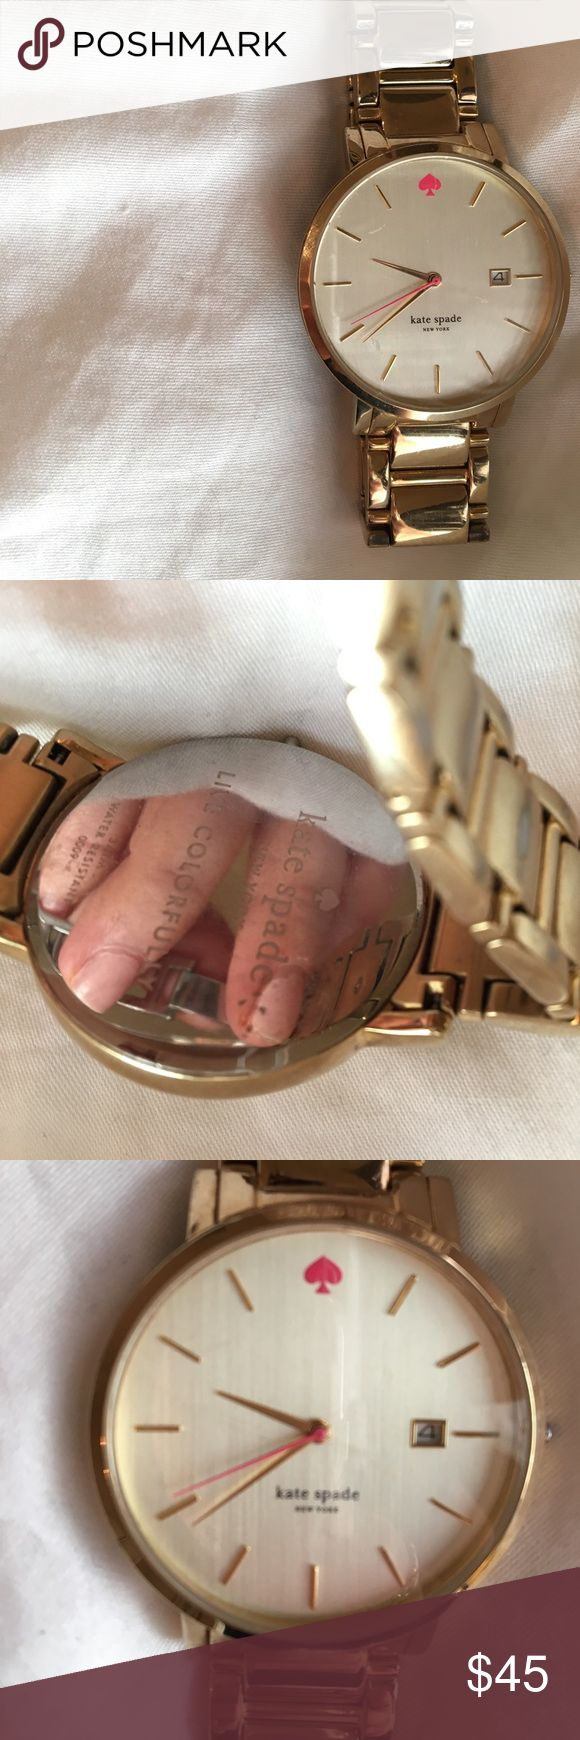 Kate Spade Gold Watch Kate Spade Gold watch from the live colorfully collection. The face has 3 scratches on it and the watch needs a new battery. There is some wear on the band also. Still looks beautiful though. If you have any questions let me know! kate spade Jewelry Bracelets